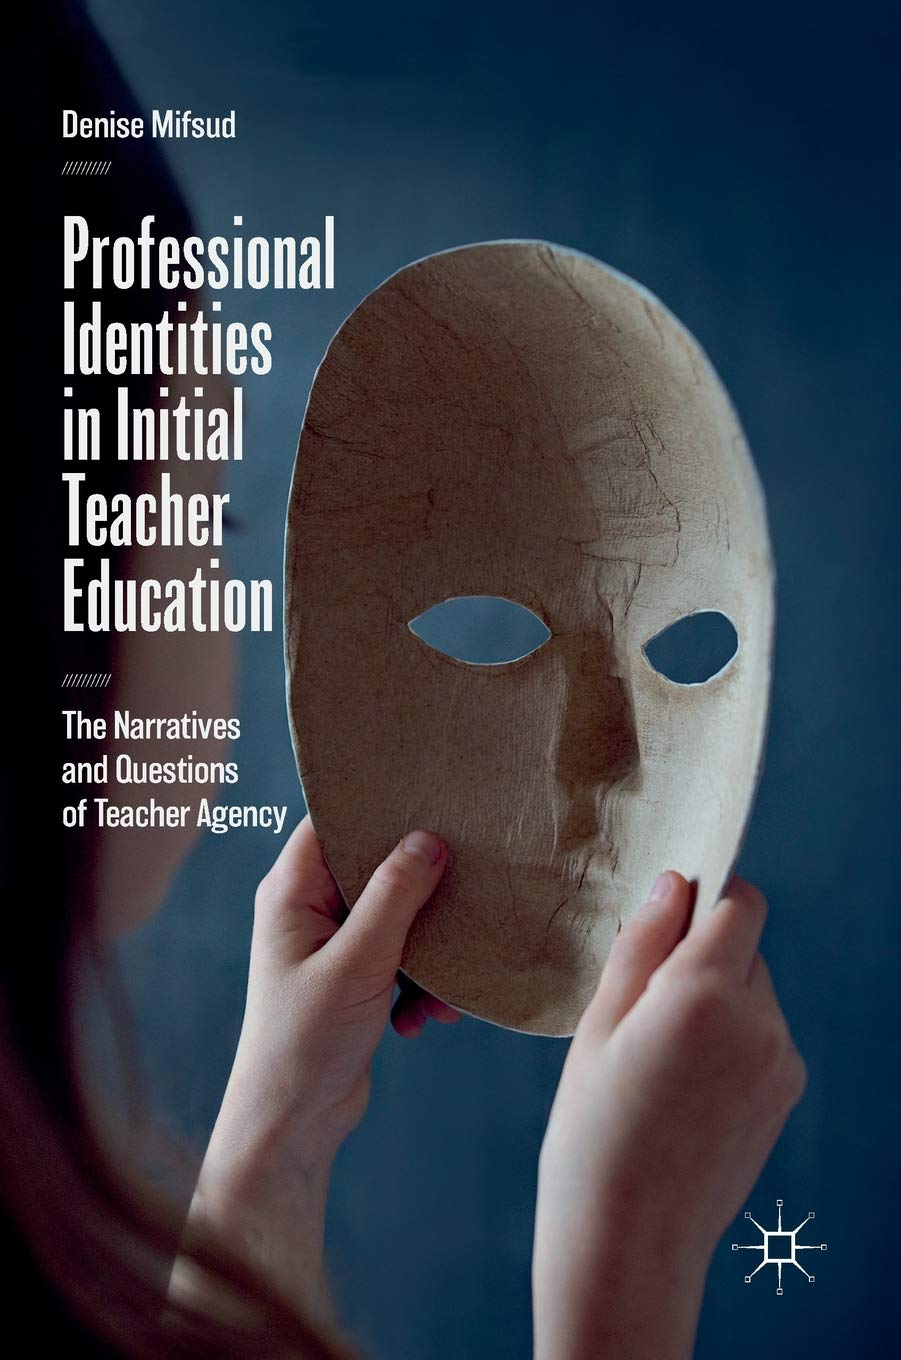 Professional Identities in Initial Teacher Education: The Narratives and Questions of Teacher Agency by Palgrave Macmillan